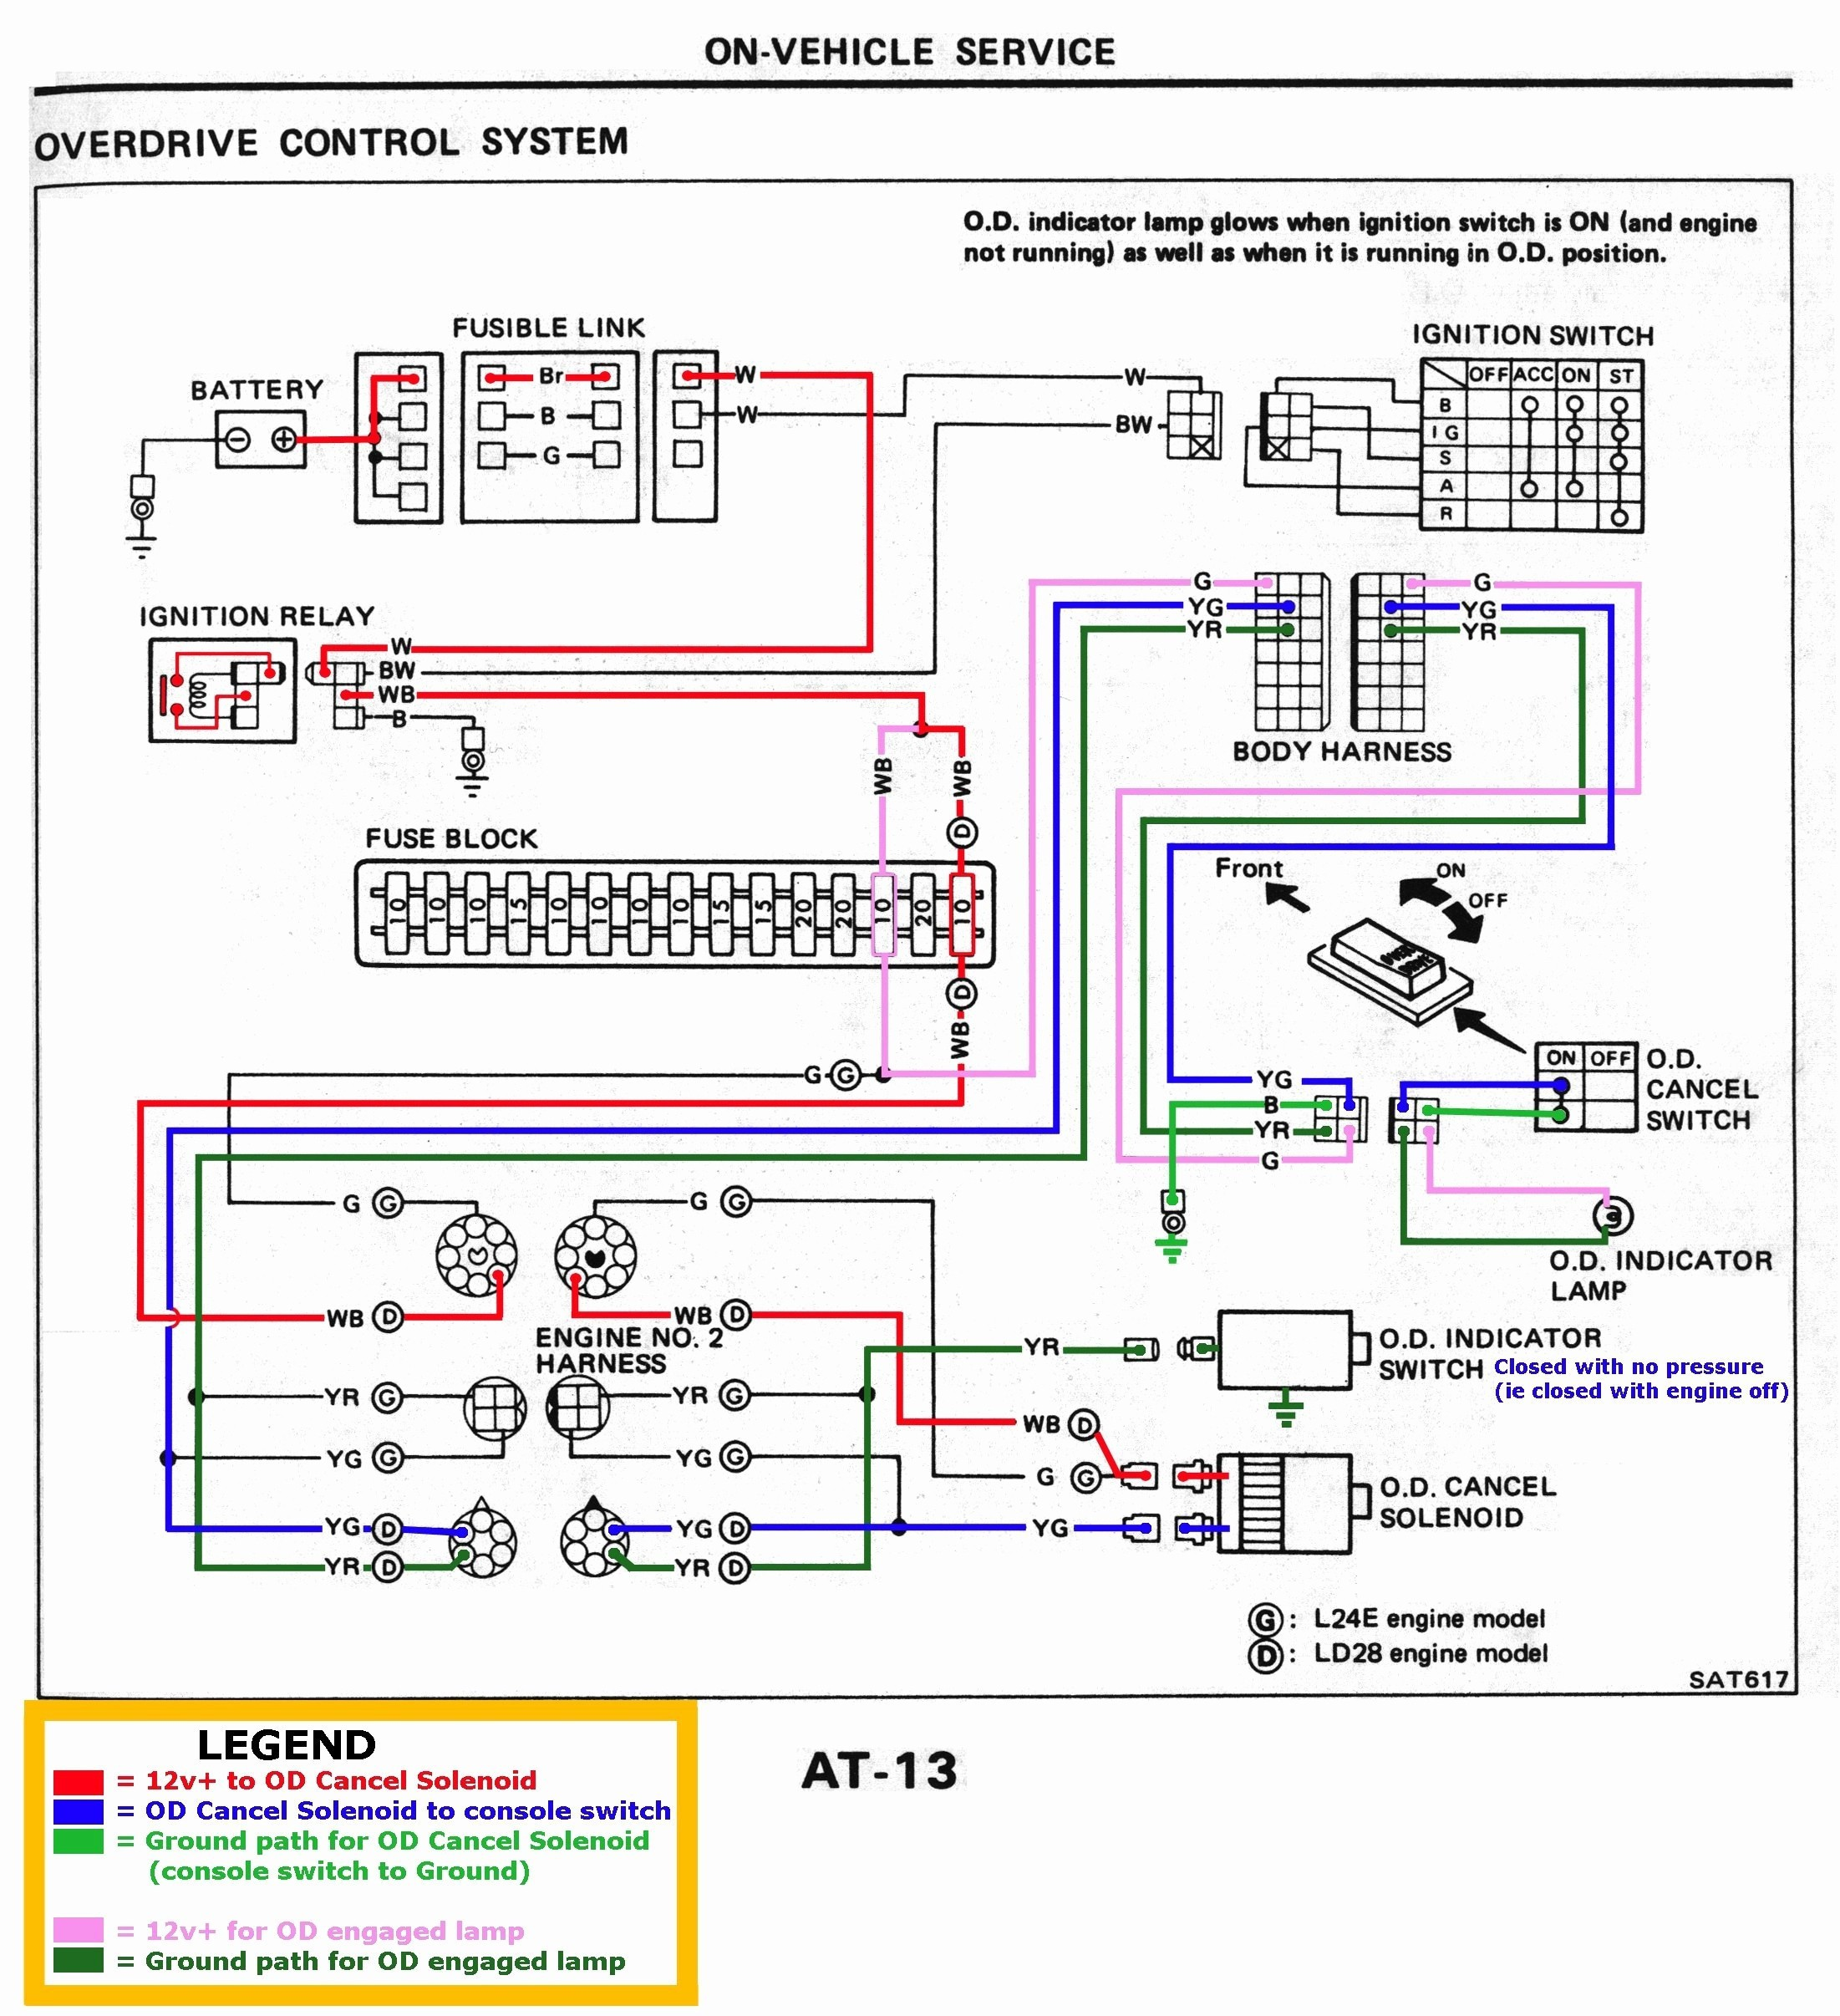 Square D Pressure Switch Wiring Diagram Air Pressor Wiring Diagram New Wiring Diagram for Pressure Switch Of Square D Pressure Switch Wiring Diagram